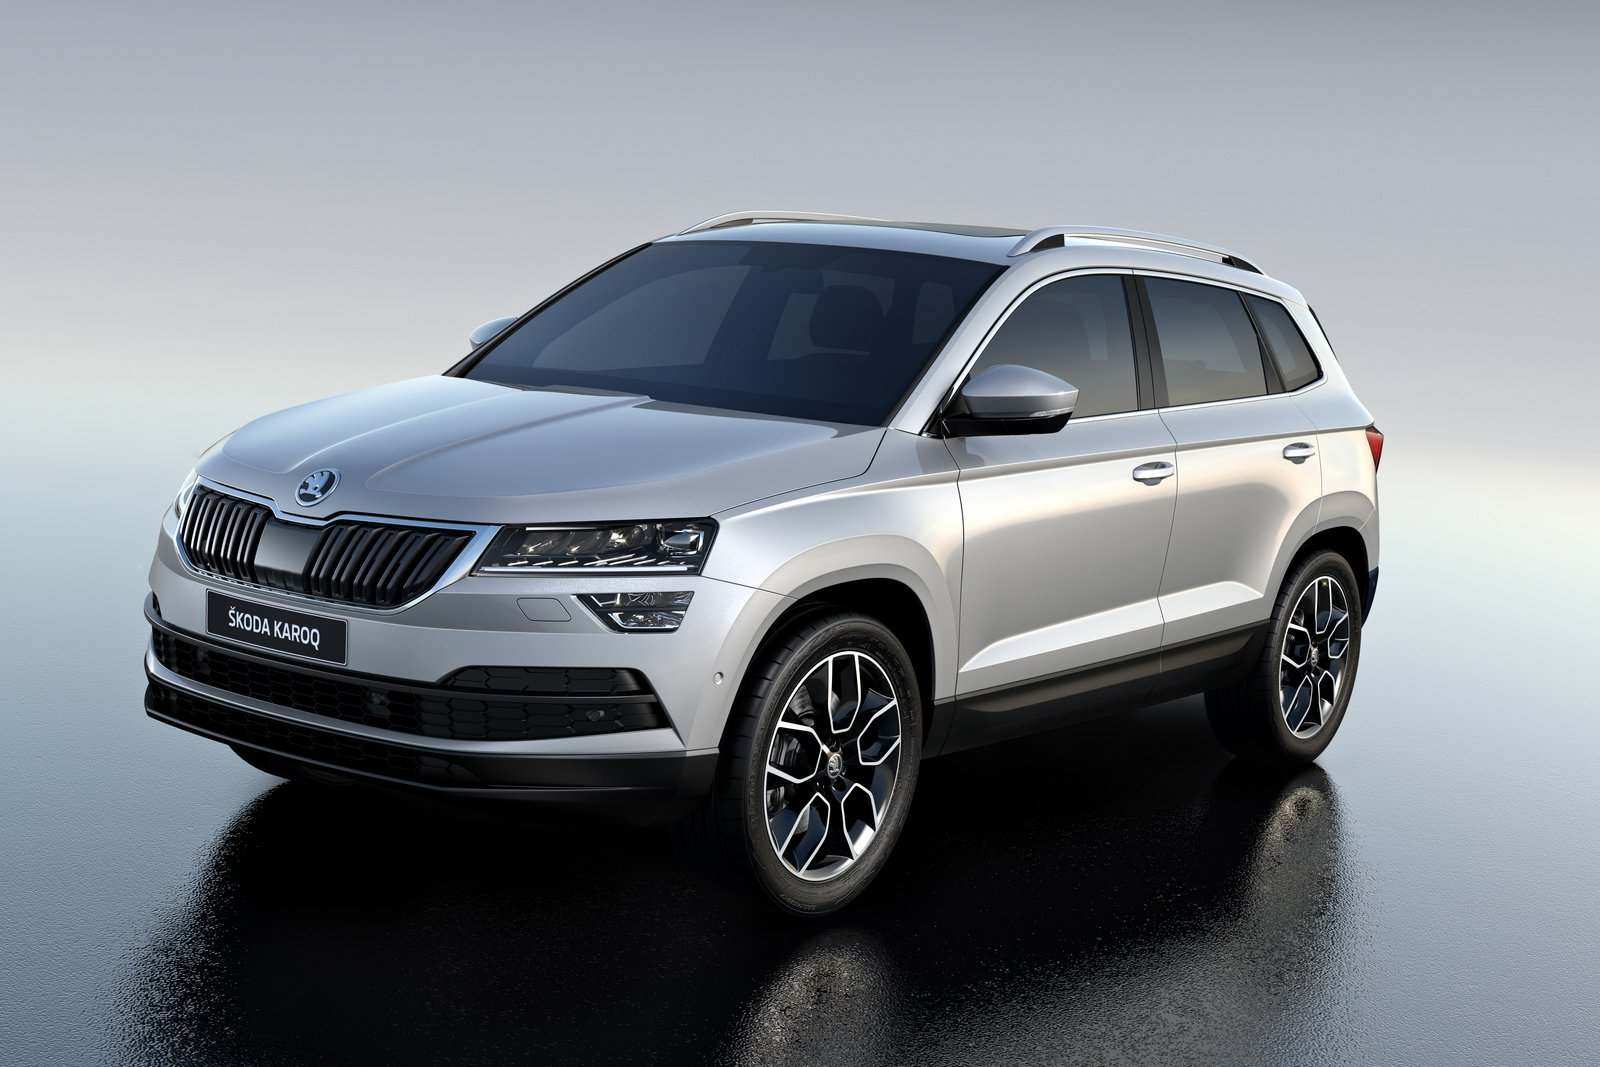 Skoda Karoq front three quarters left side